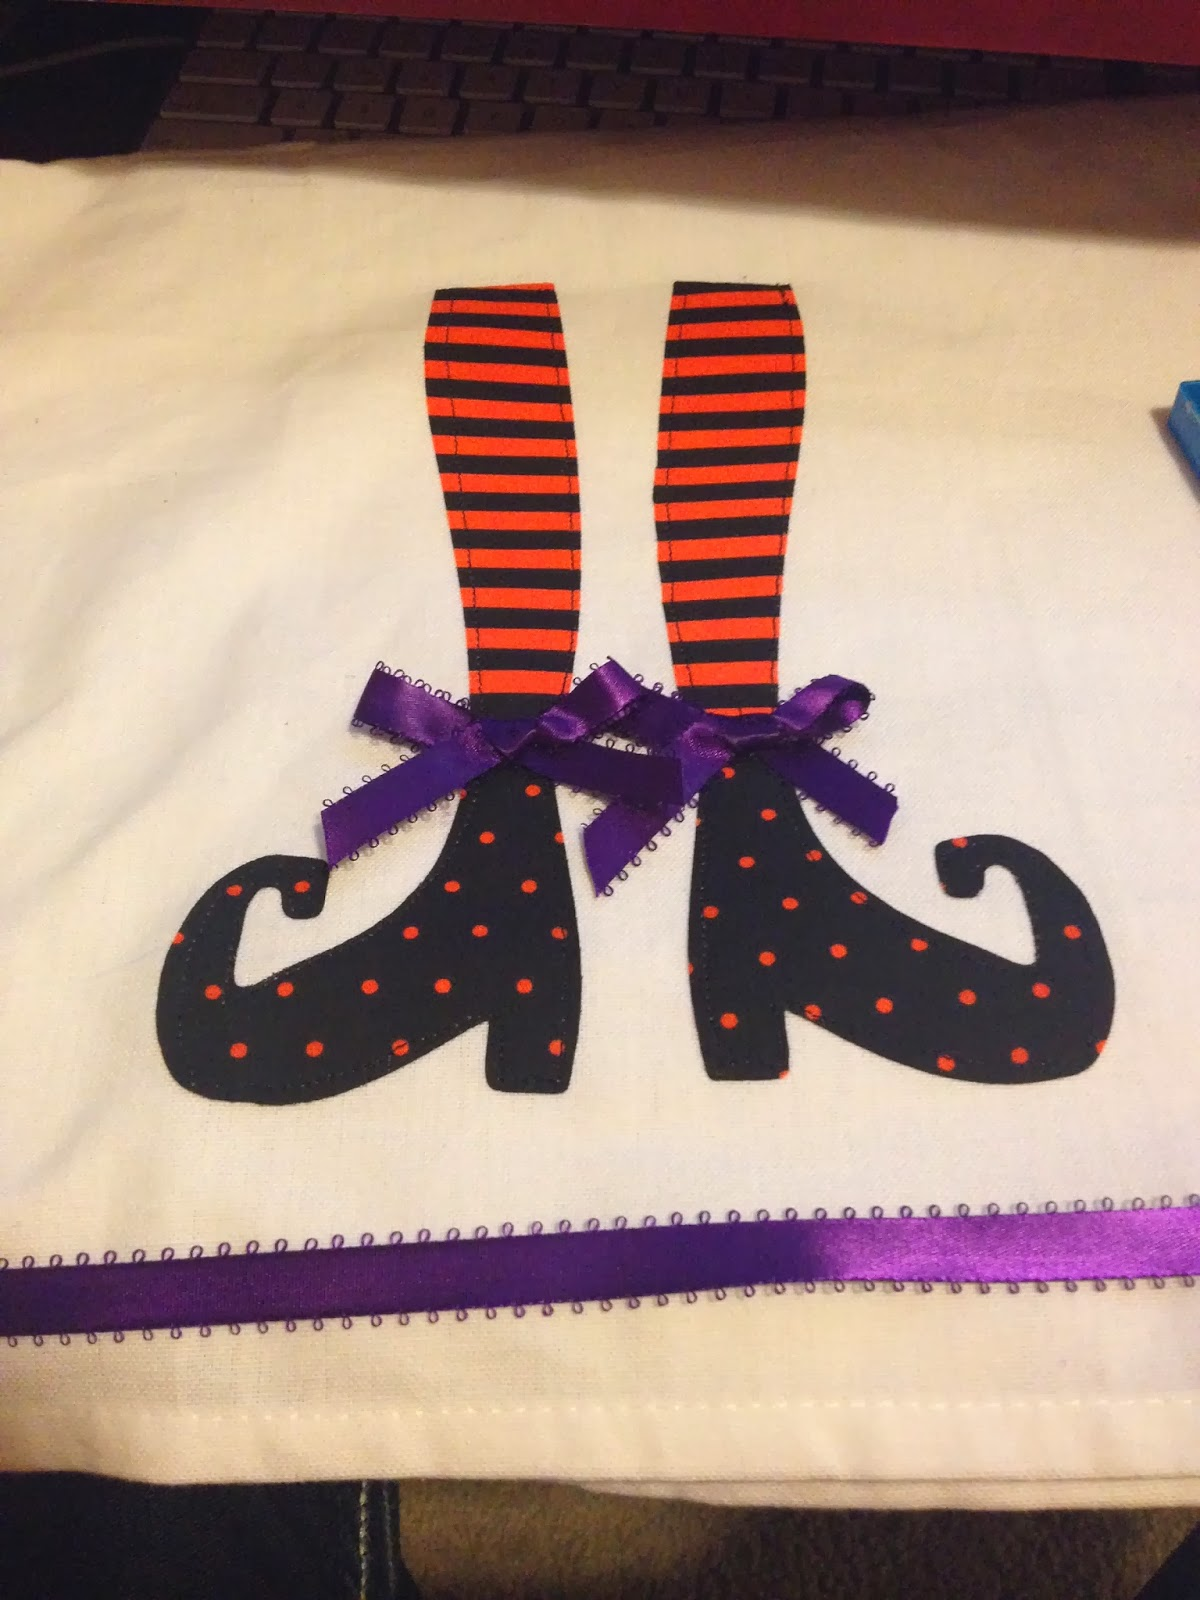 Then we made halloween witch leg dish towels - Seven mistakes we make when using towels ...